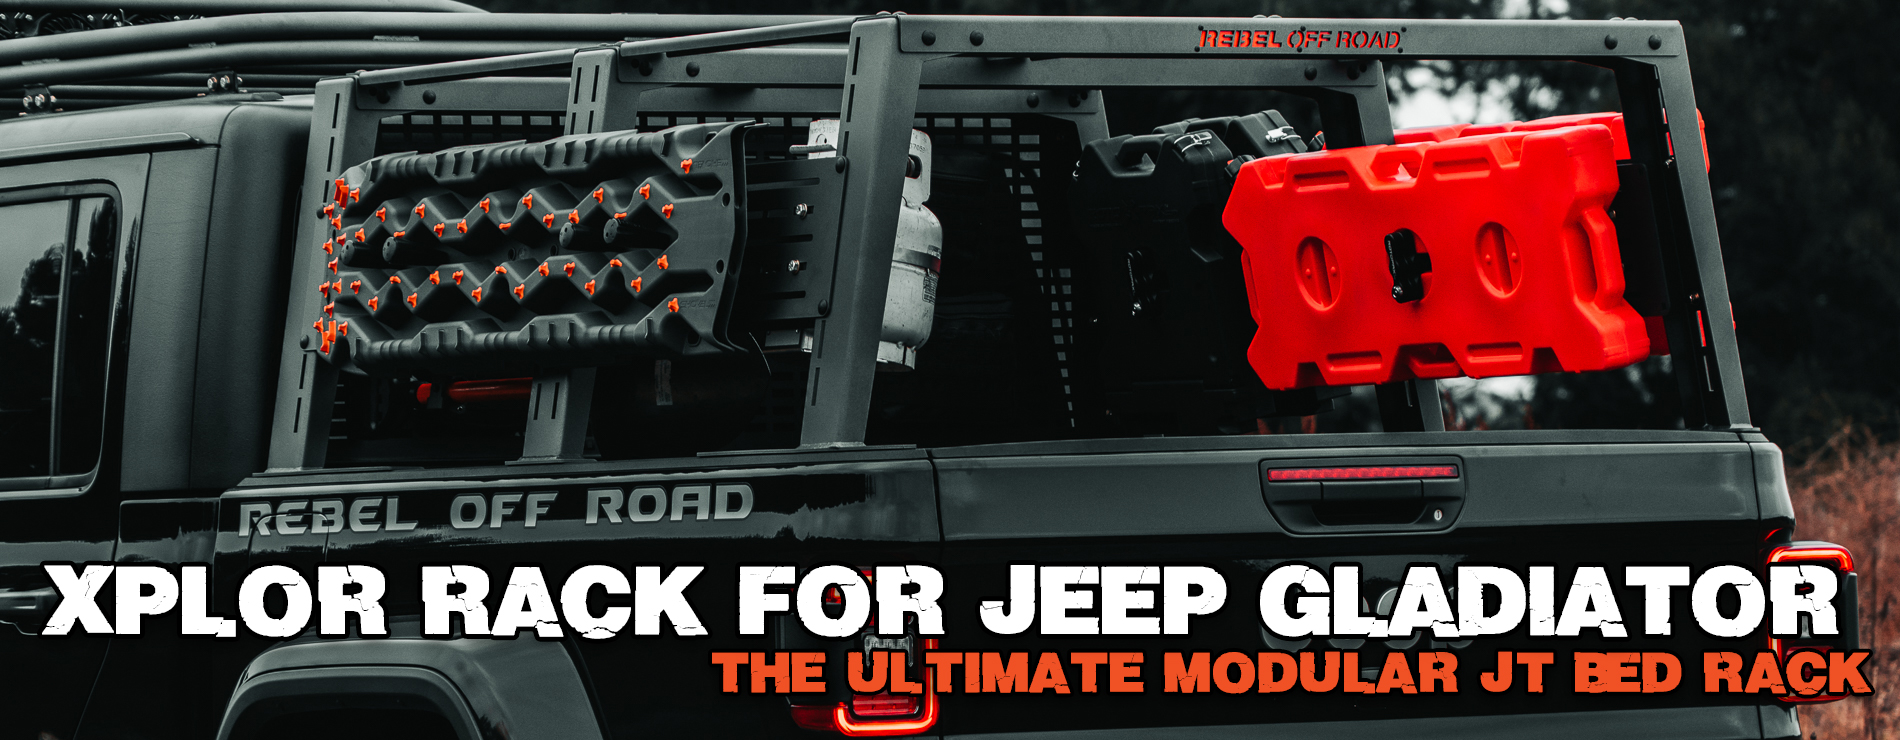 XPLOR RACK FOR JEEP GLADIATOR